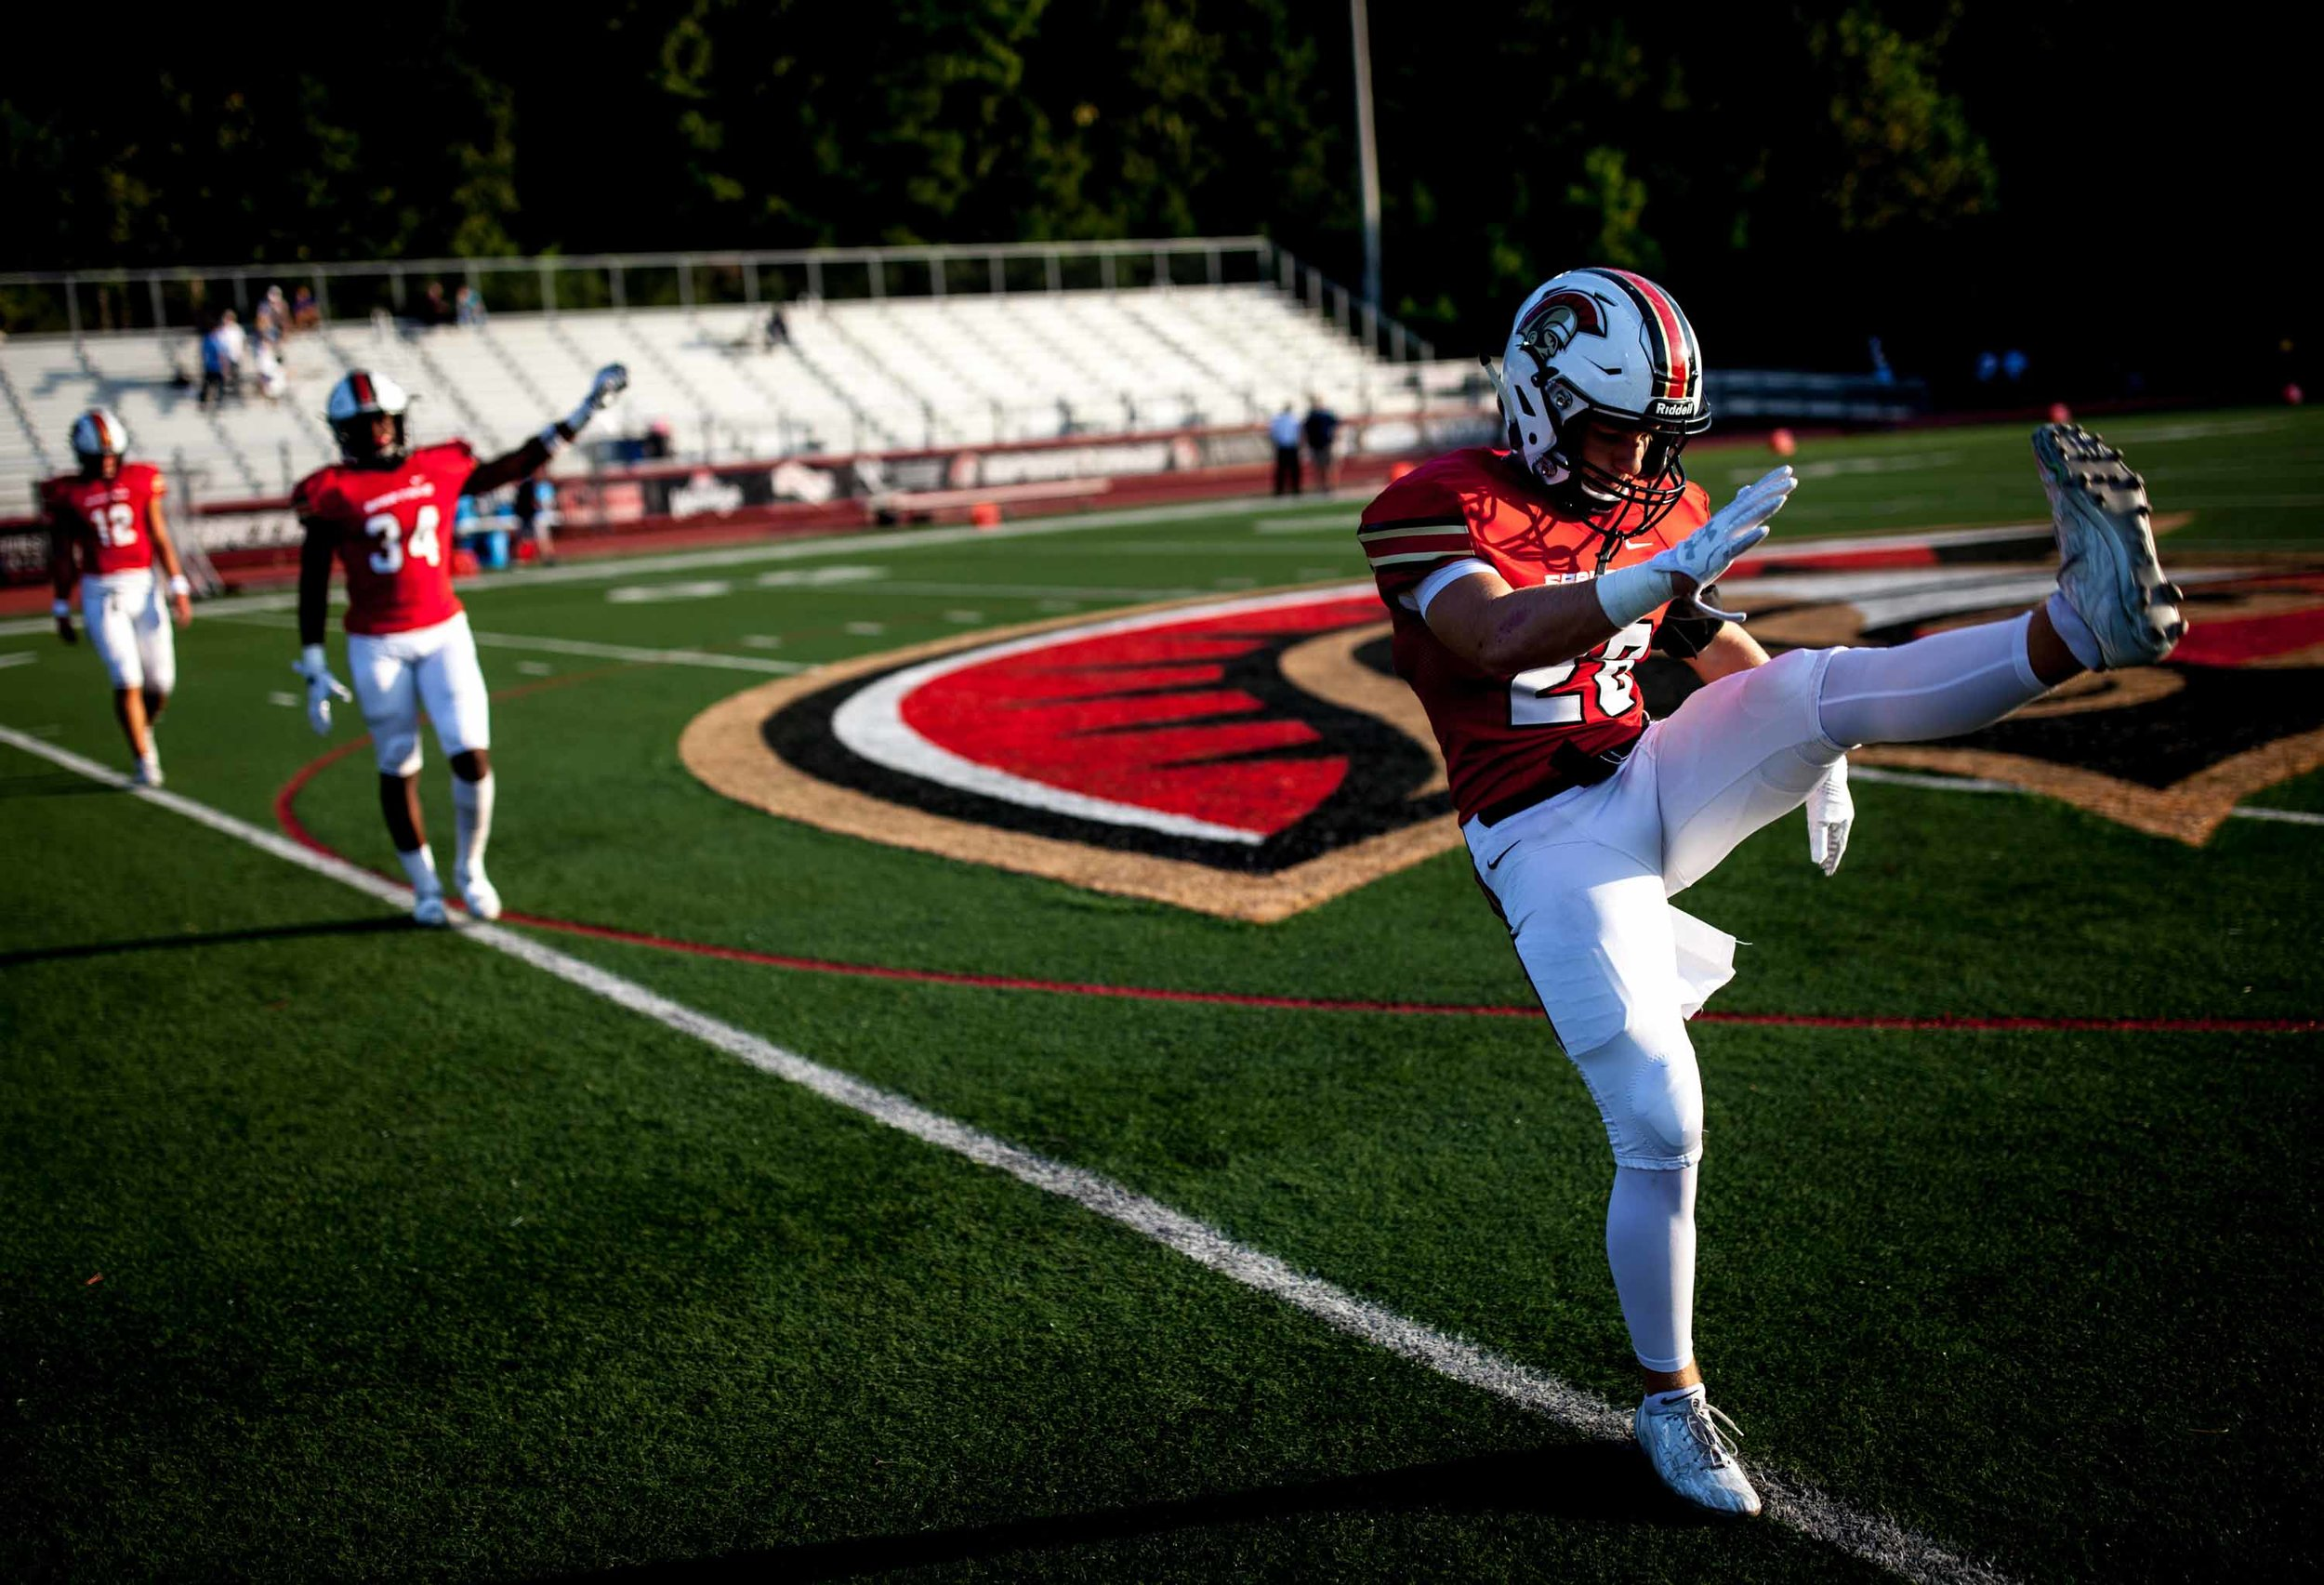 Greater Atlanta Christian football players warm up before a high school football game against Valor Christian of Colorado, Friday, Sept. 8, 2017, in Norcross, Ga.Branden Camp for The AJC